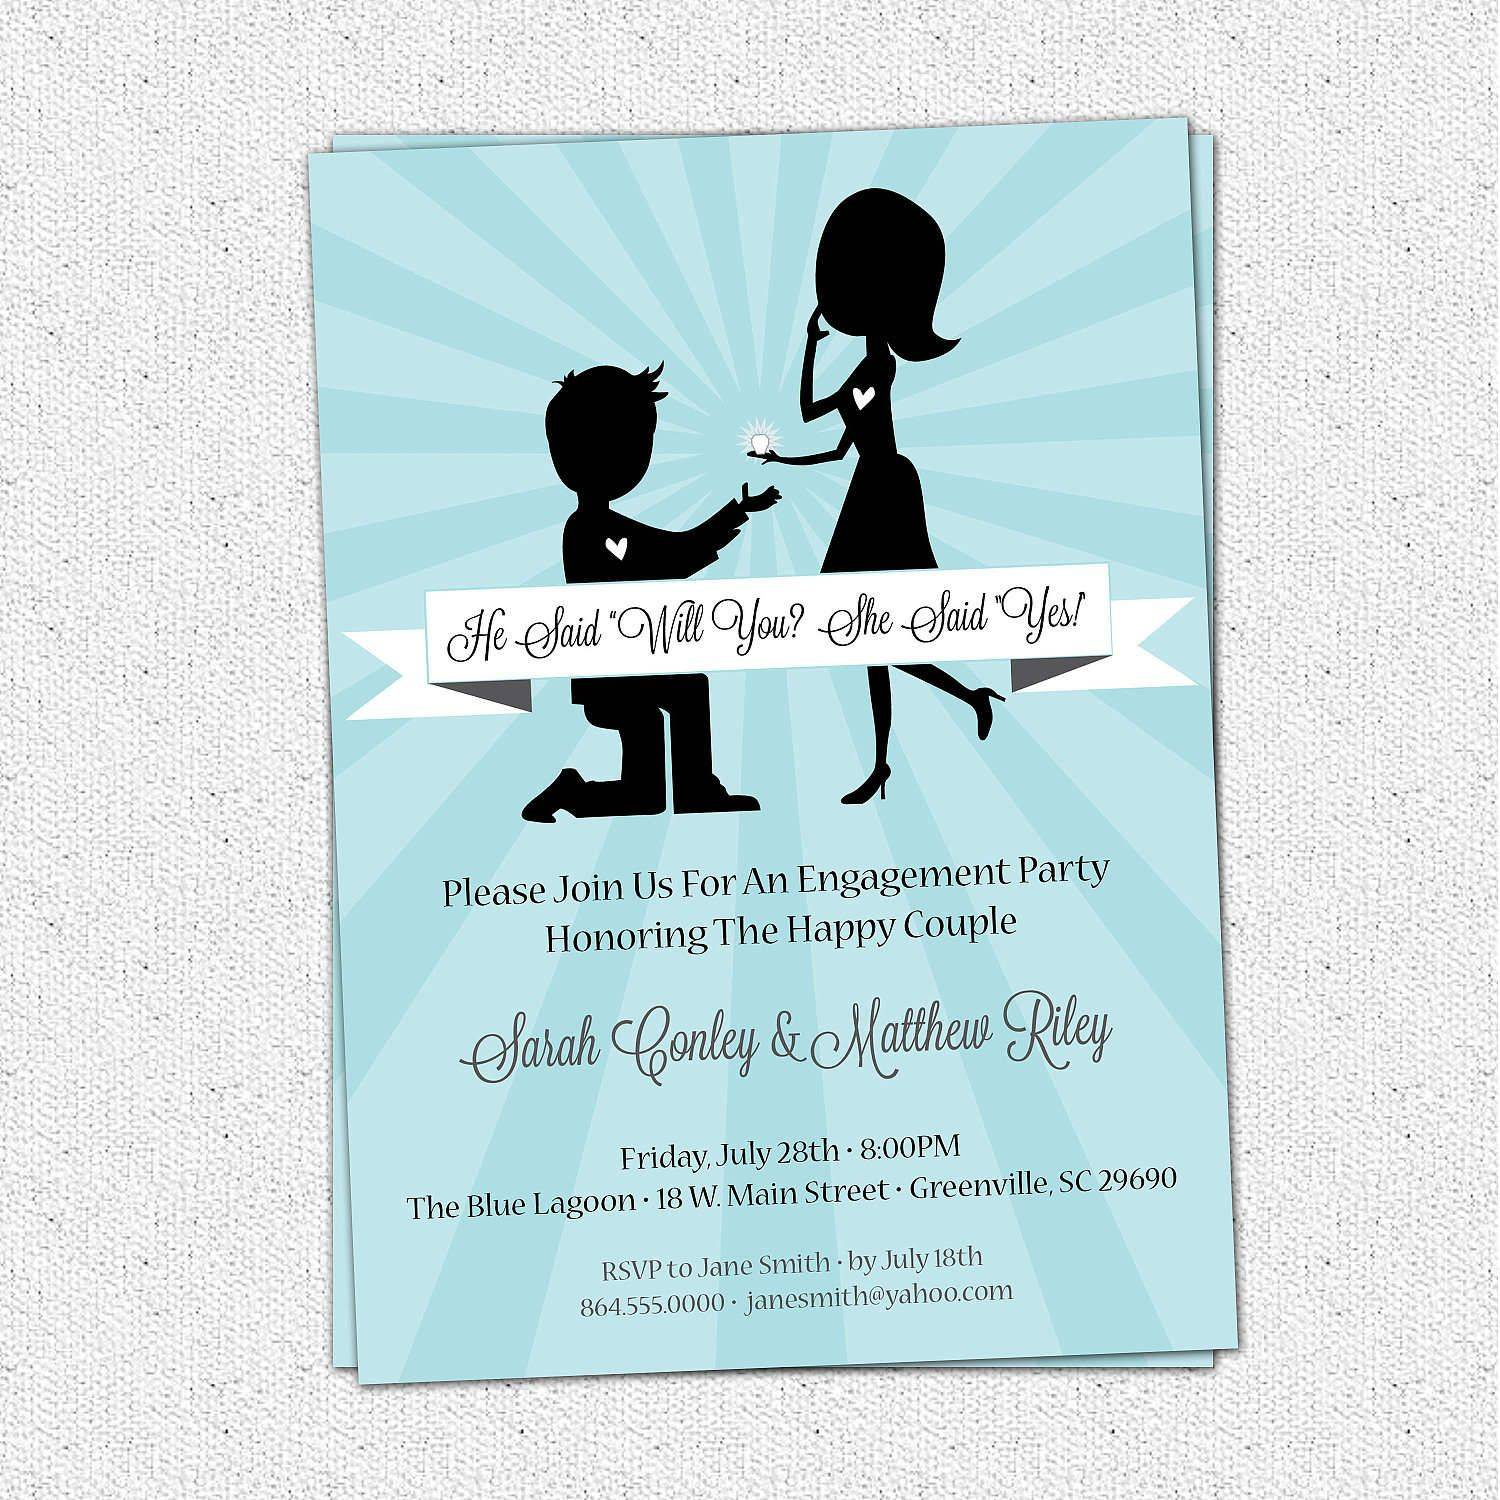 Wedding Engagement Invitation Templates